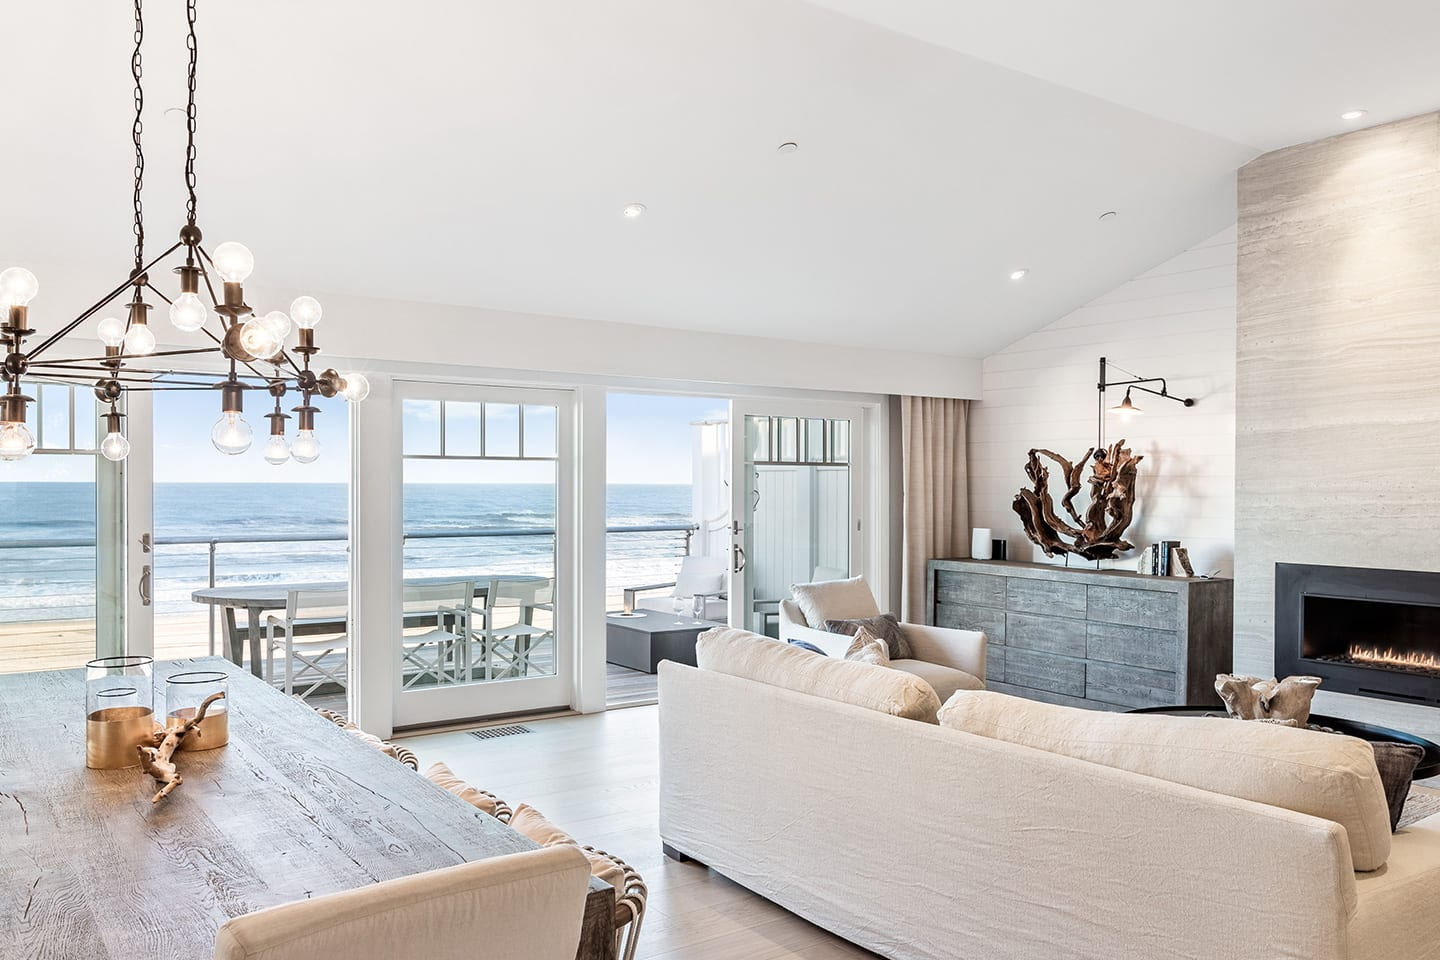 Salt Sea 5 Living room with a fireplace and dining room with a deck overlooking the ocean